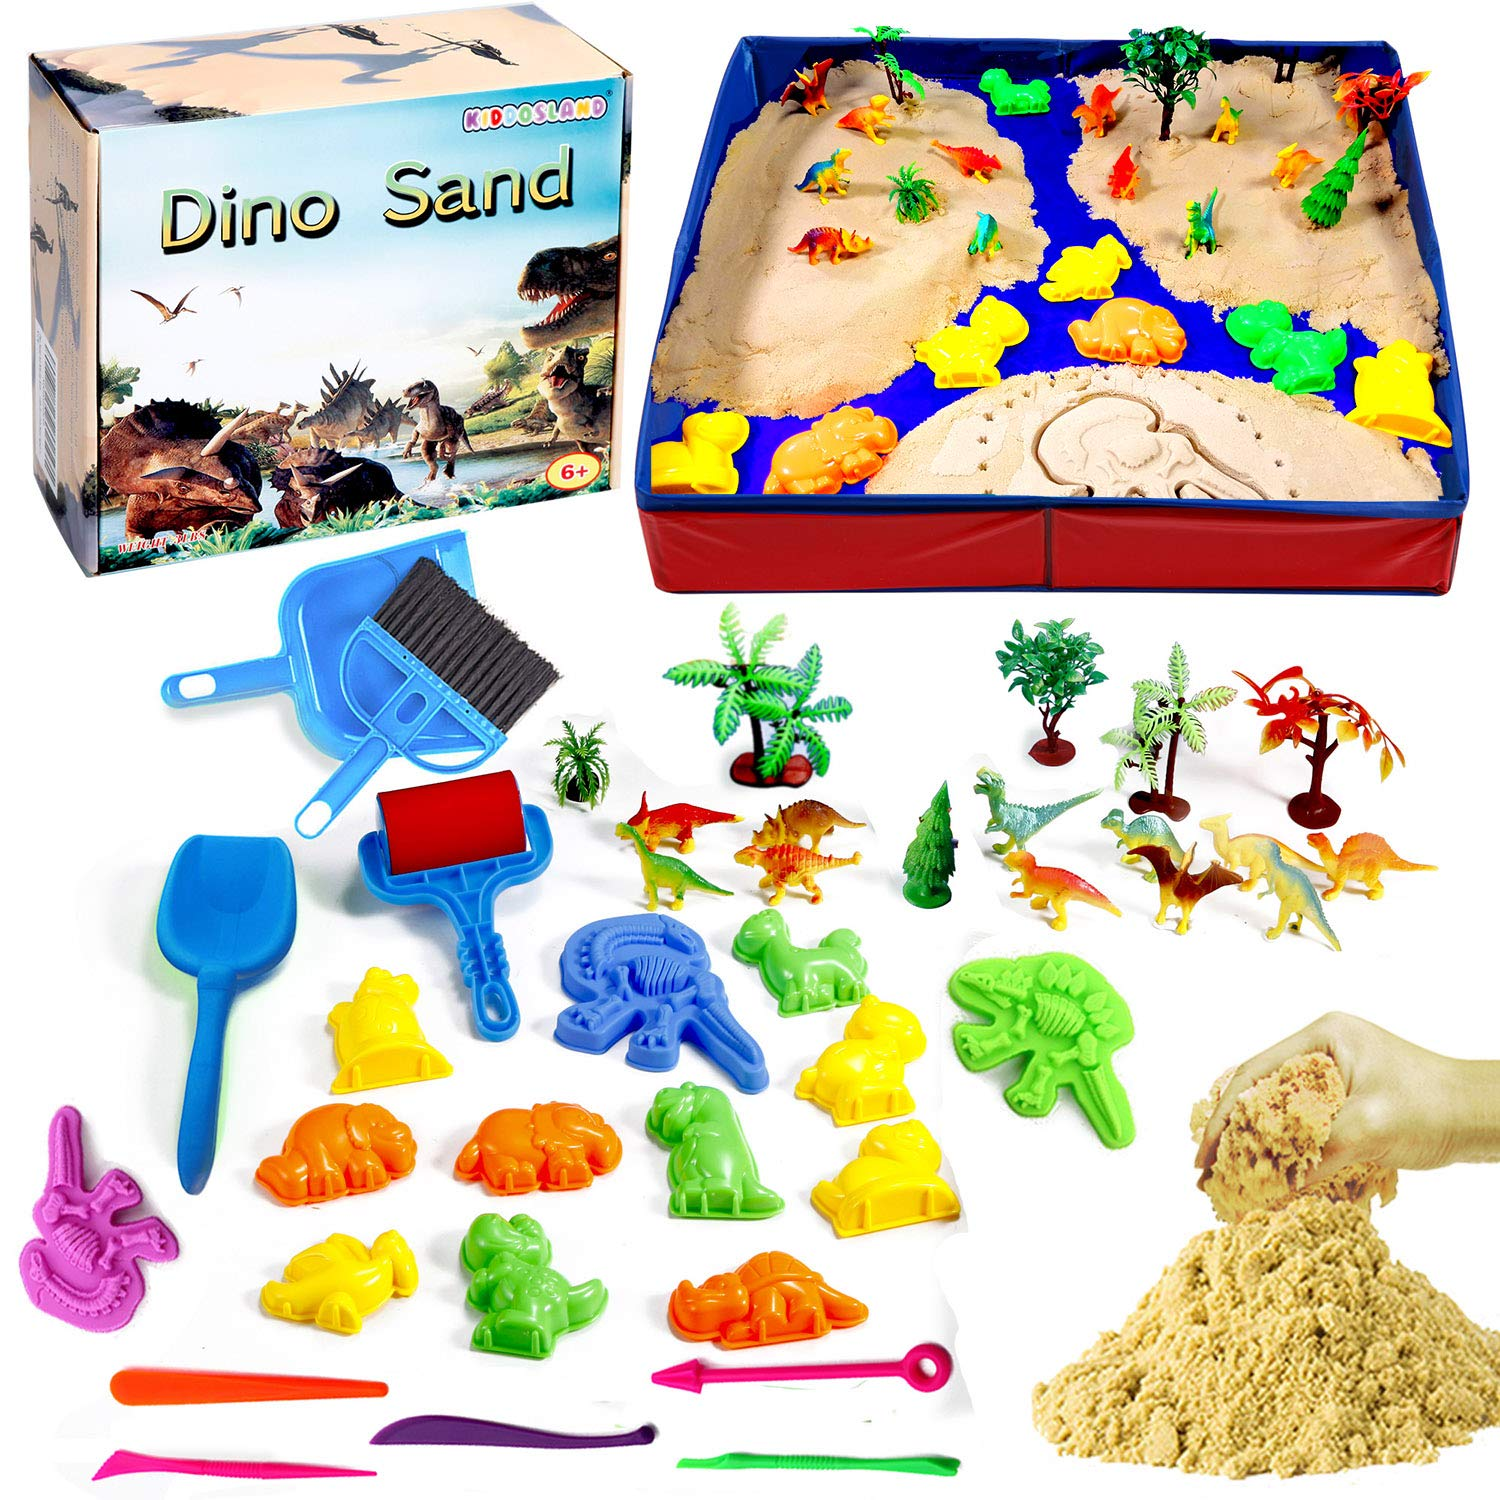 Dino Play Sand Kit for Kids 3lbs Cool Dinosaur Edition Motion Sand with an Inflation-Free Sandbox and Numerous Dino Moulds and Tools Creative Toys for Boys and Girls Ages 3 4 5 6 7+ Year Old by Kiddosland